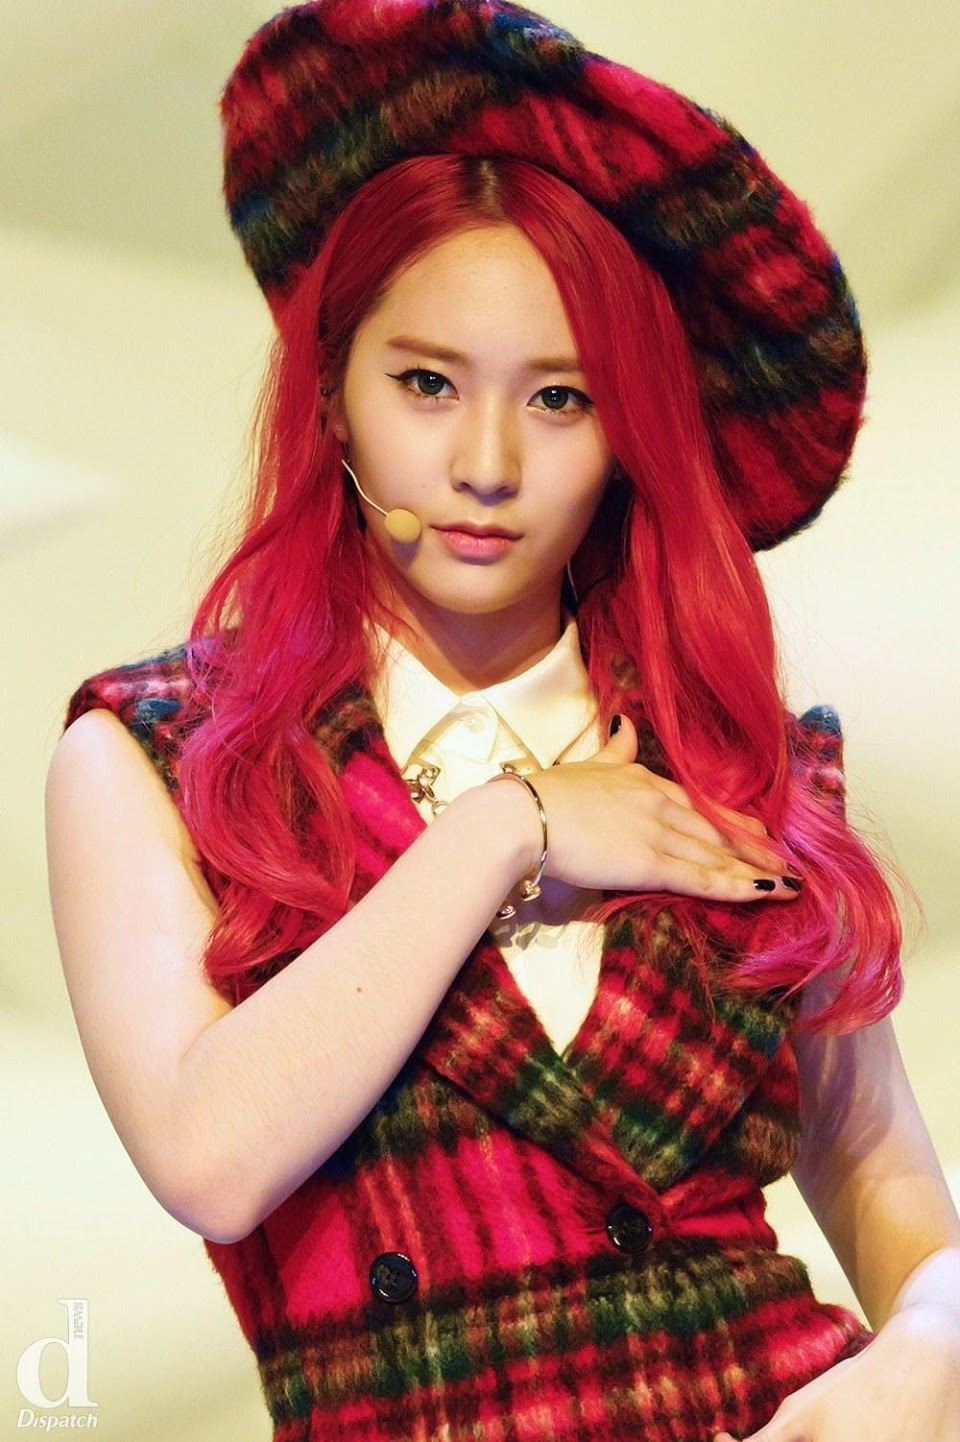 3e2c03895609139e757bbcac147edfa1_redstal-pinkstal-krystal-with-pink-red-hair-is-bae-af-fx-krystal-red-hair_1000-1502